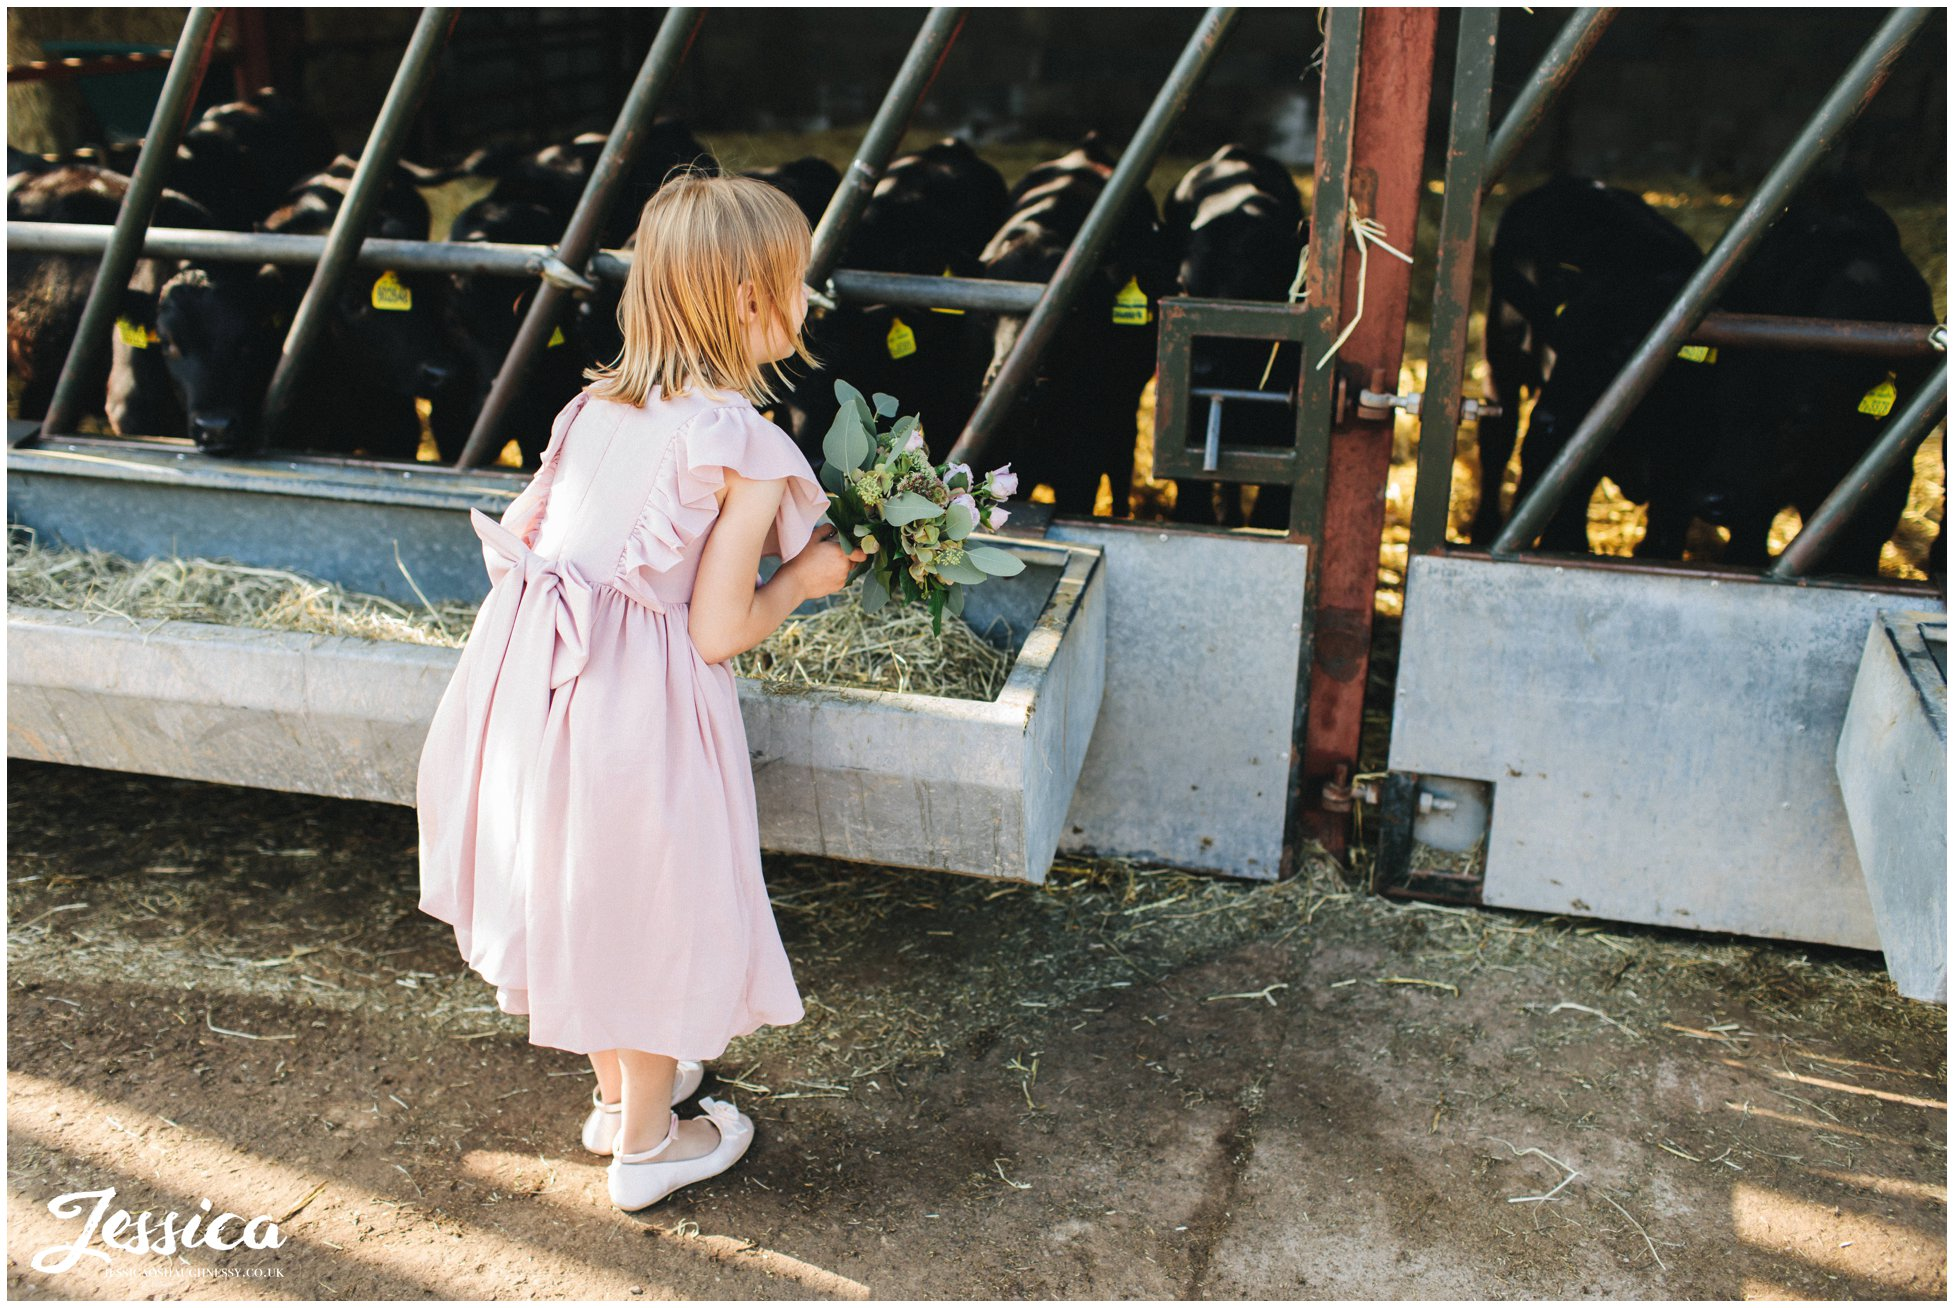 flower girls looks at the cows